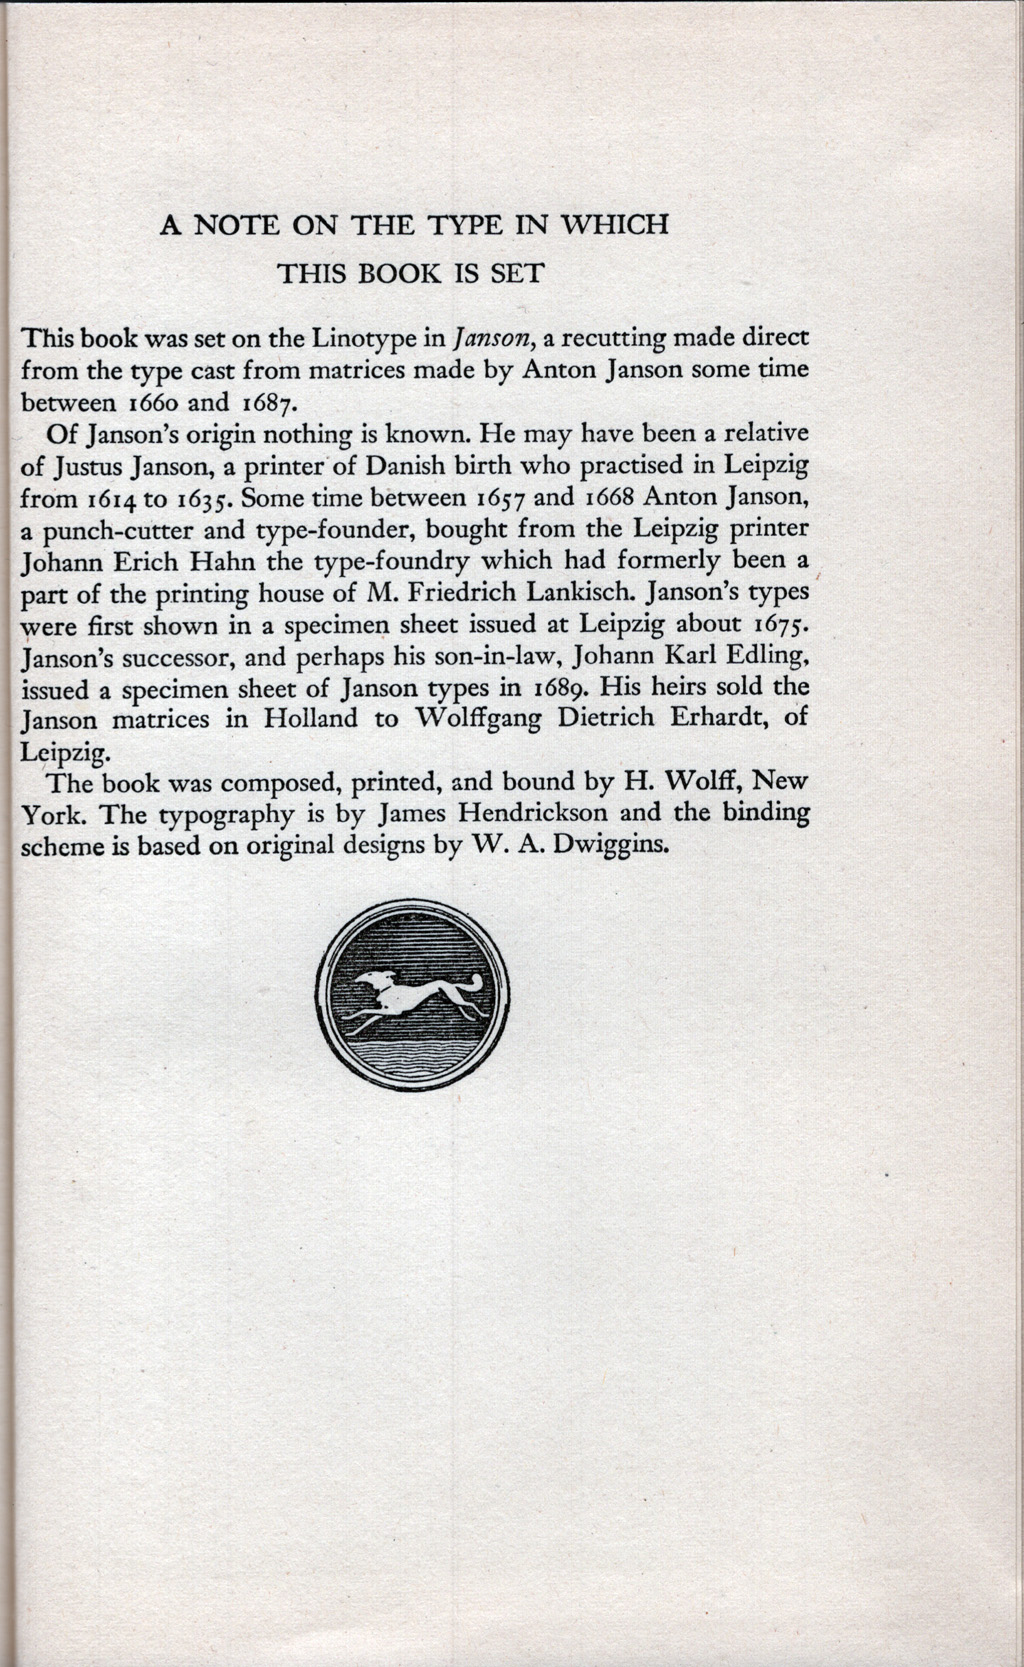 Colophon for The Westward Crossings by Jeannette Mirsky (New York: Alfred A. Knopf, Inc., 1946).